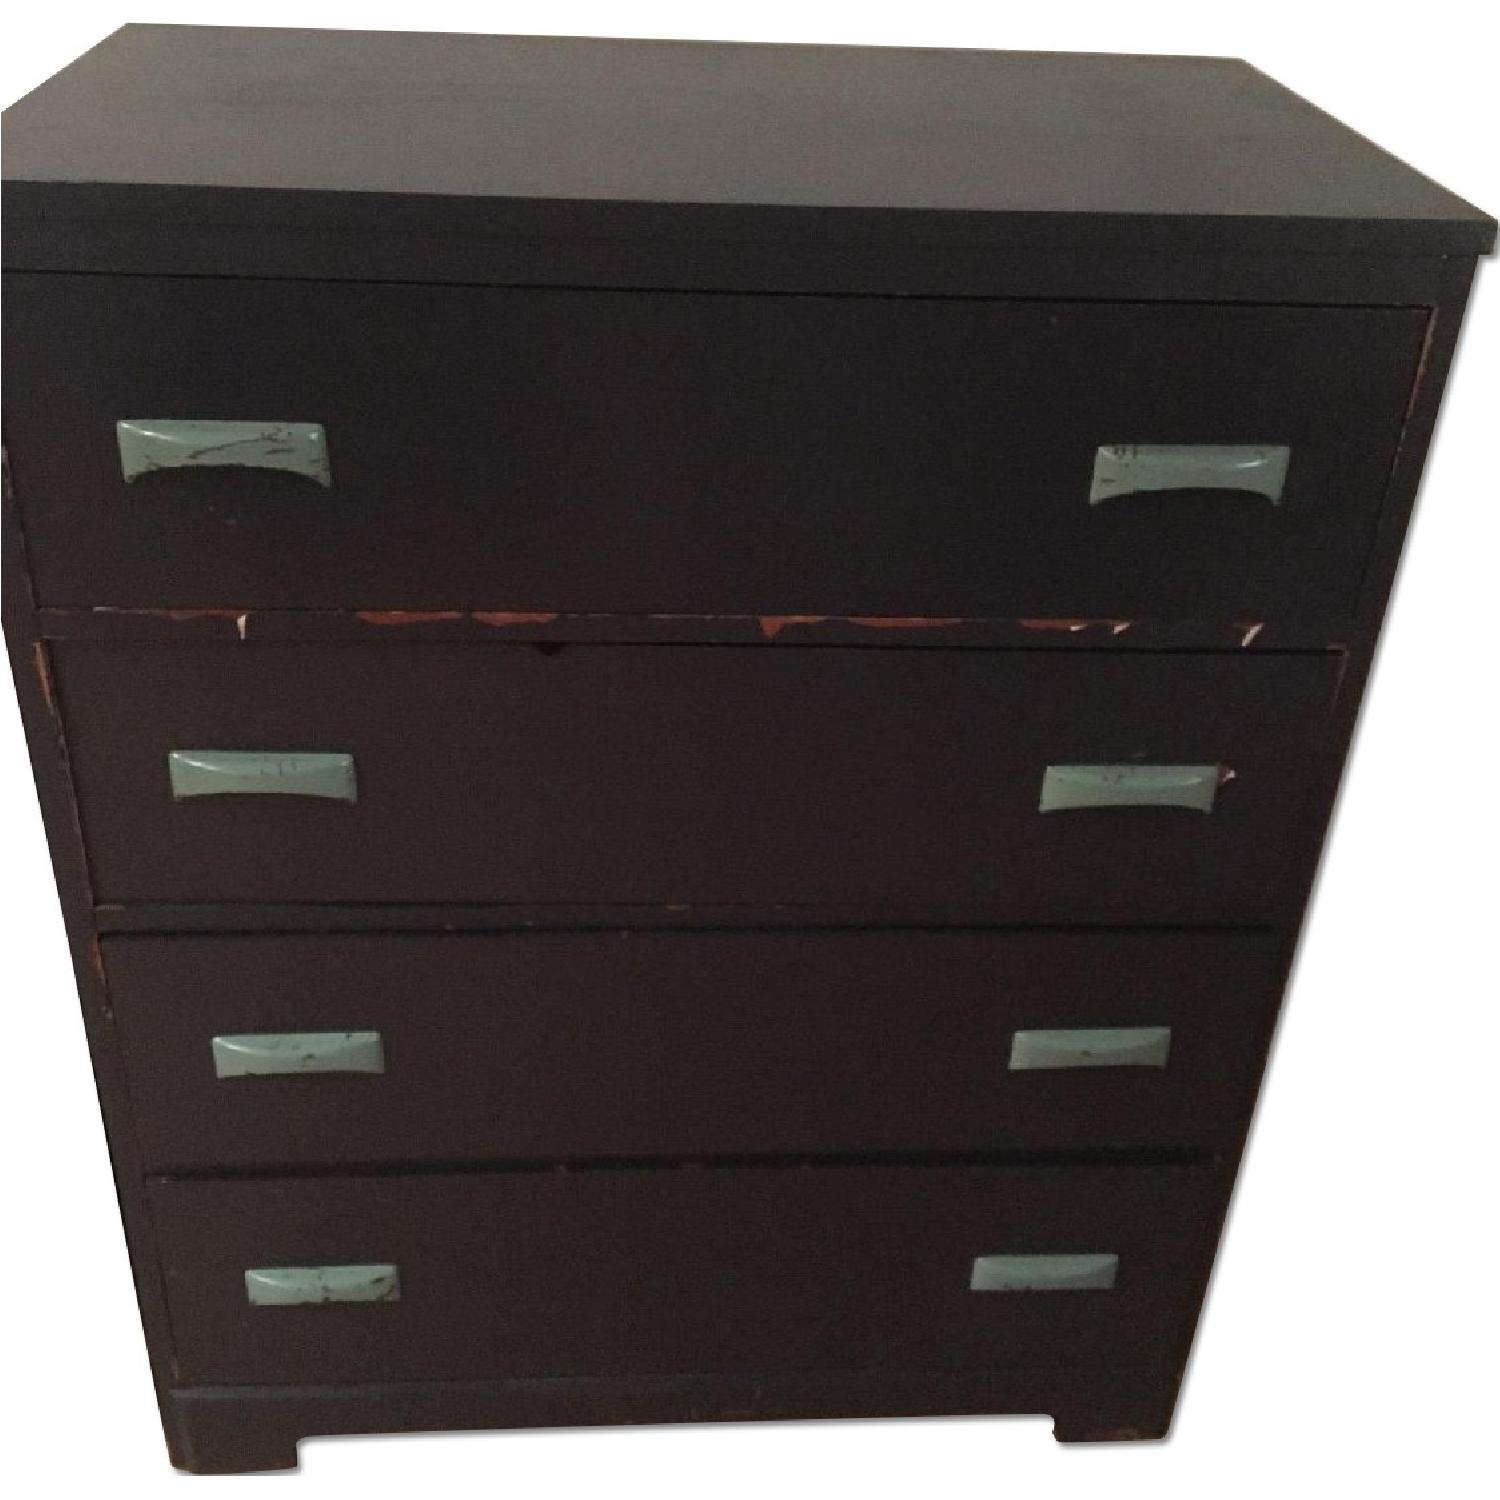 Hummel's Good Furniture Dark Blue Classic 4-Drawer Dresser - image-0